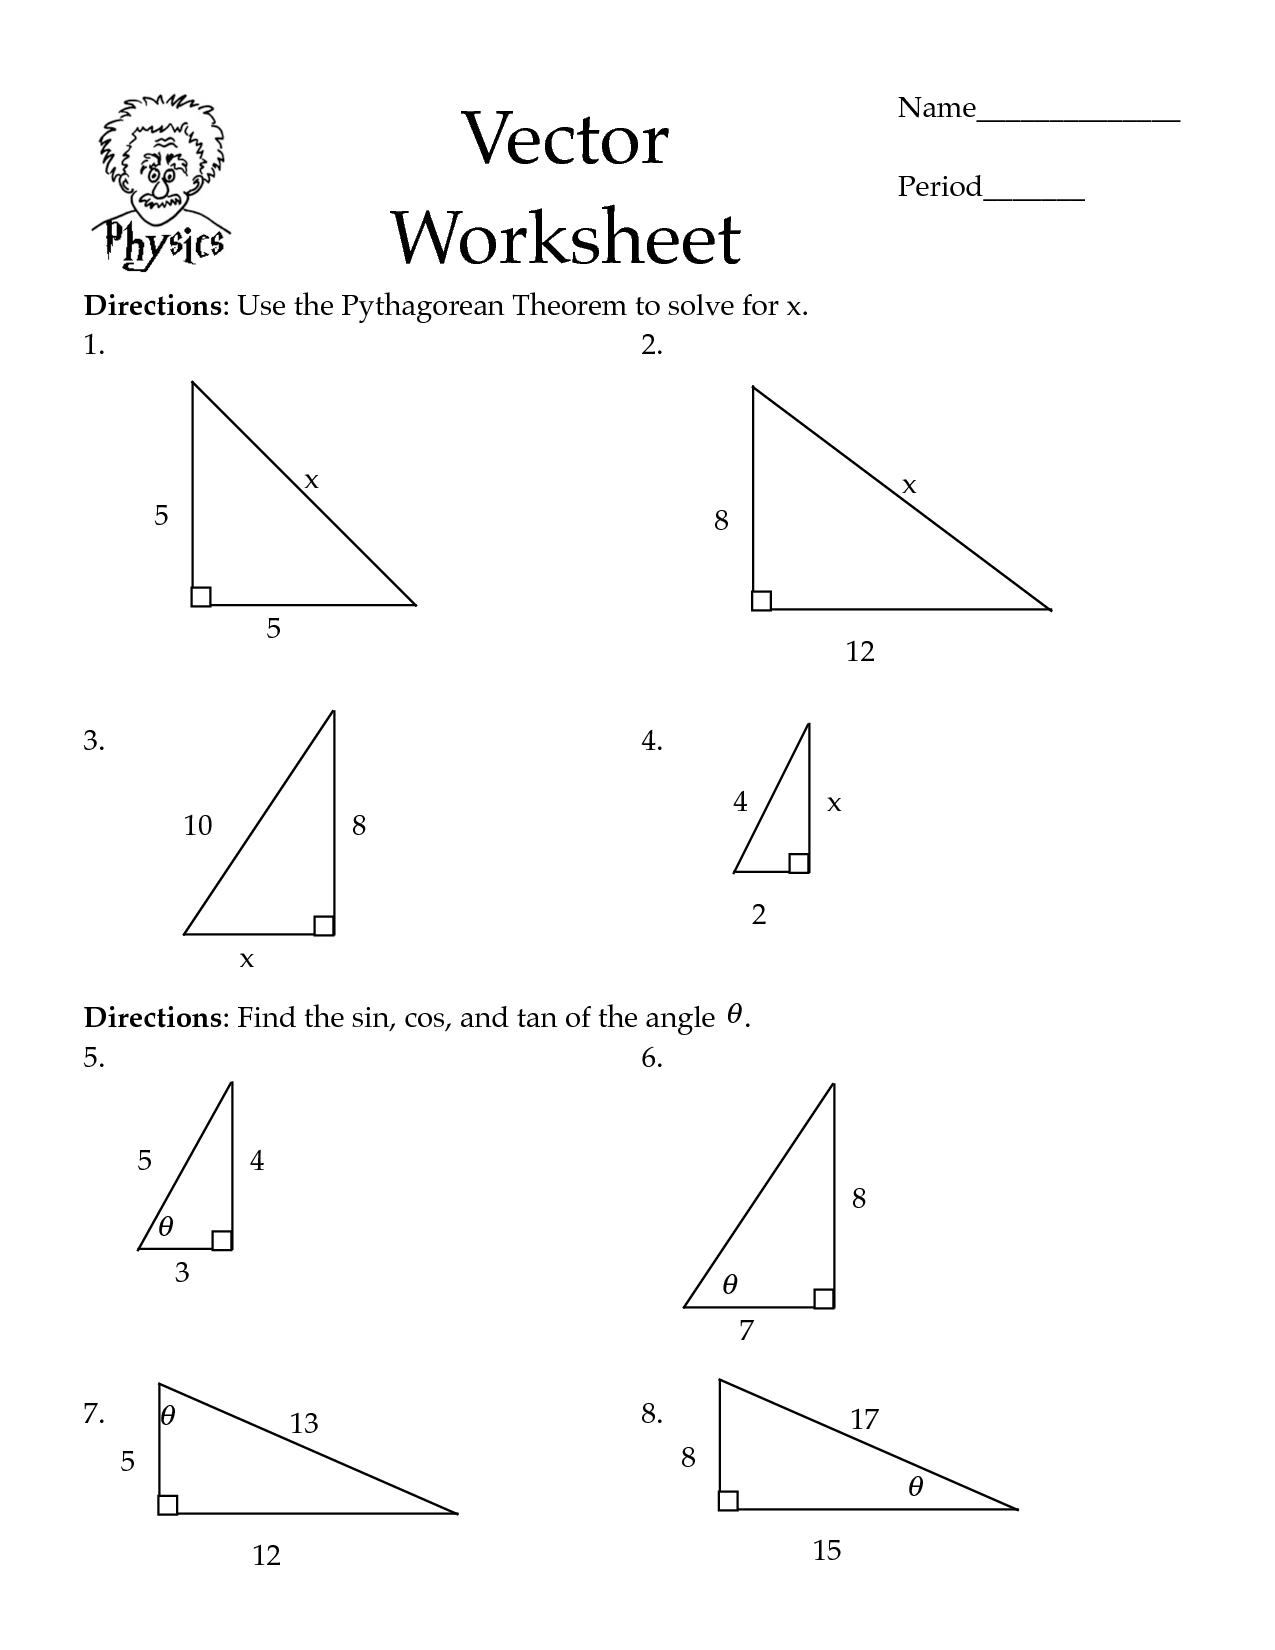 Geometry Worksheet Generator   Printable Worksheets and Activities for  Teachers [ 1650 x 1275 Pixel ]